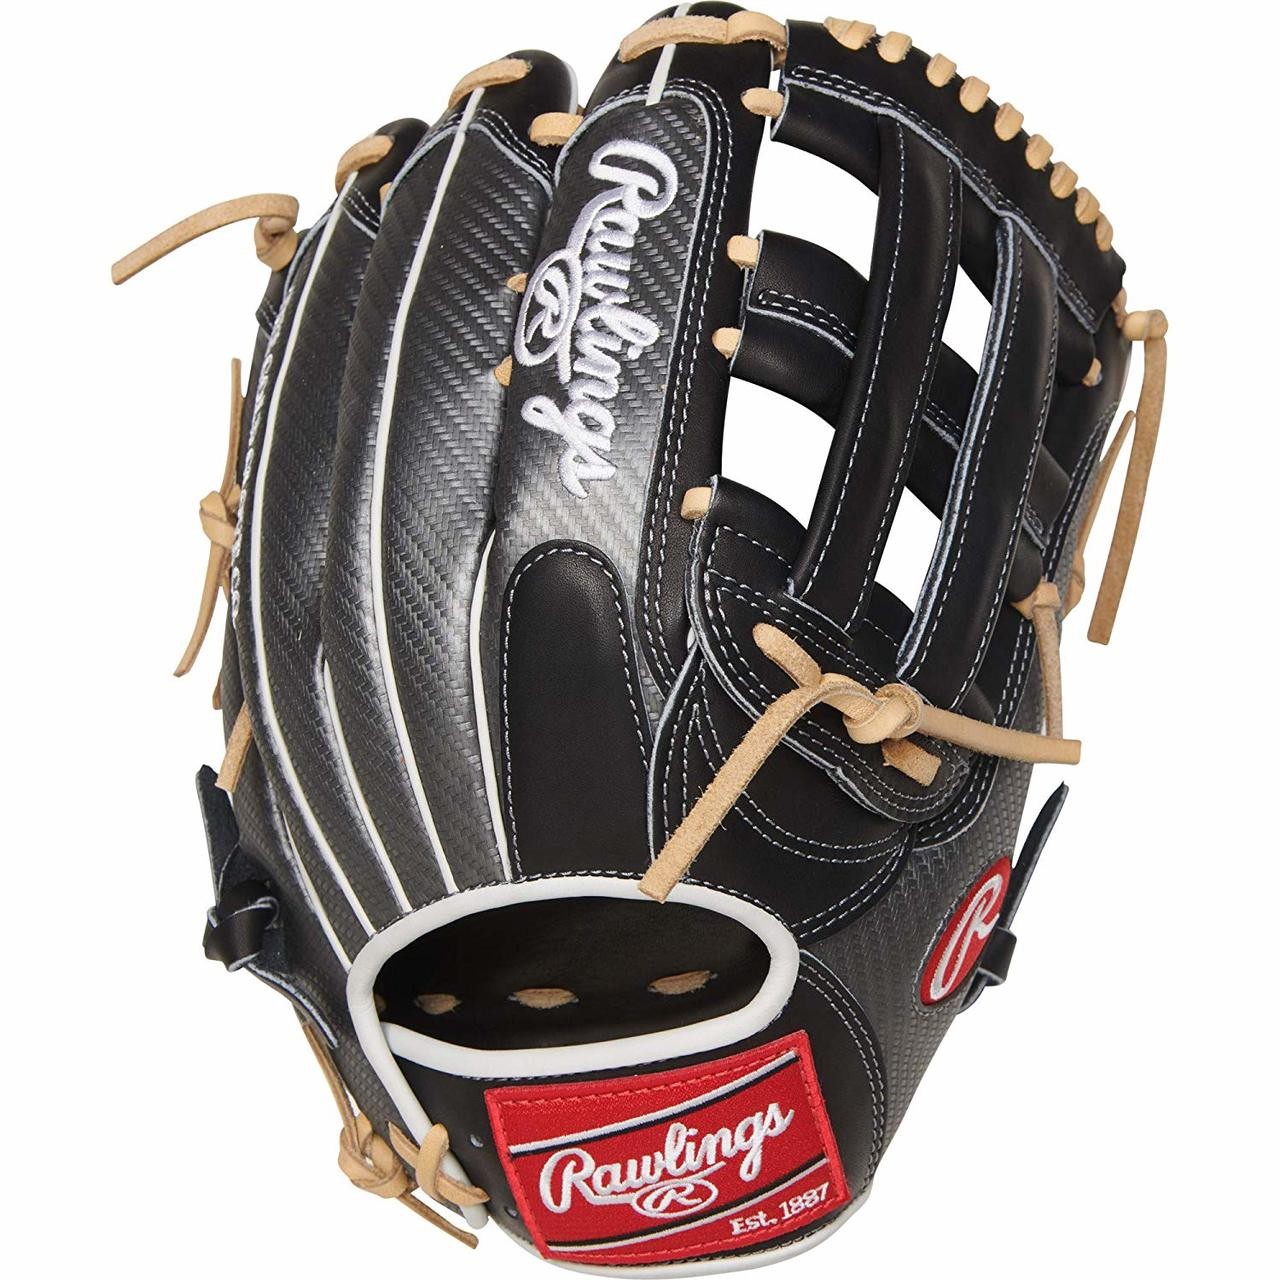 rawlings-heart-of-the-hide-hyper-shell-pro3039-6bcf-baseball-glove-12-75-right-hand-throw PRO3039-6BCF-RightHandThrow Rawlings 083321526534 Constructed from the top 5% of available hides Lighter than traditional